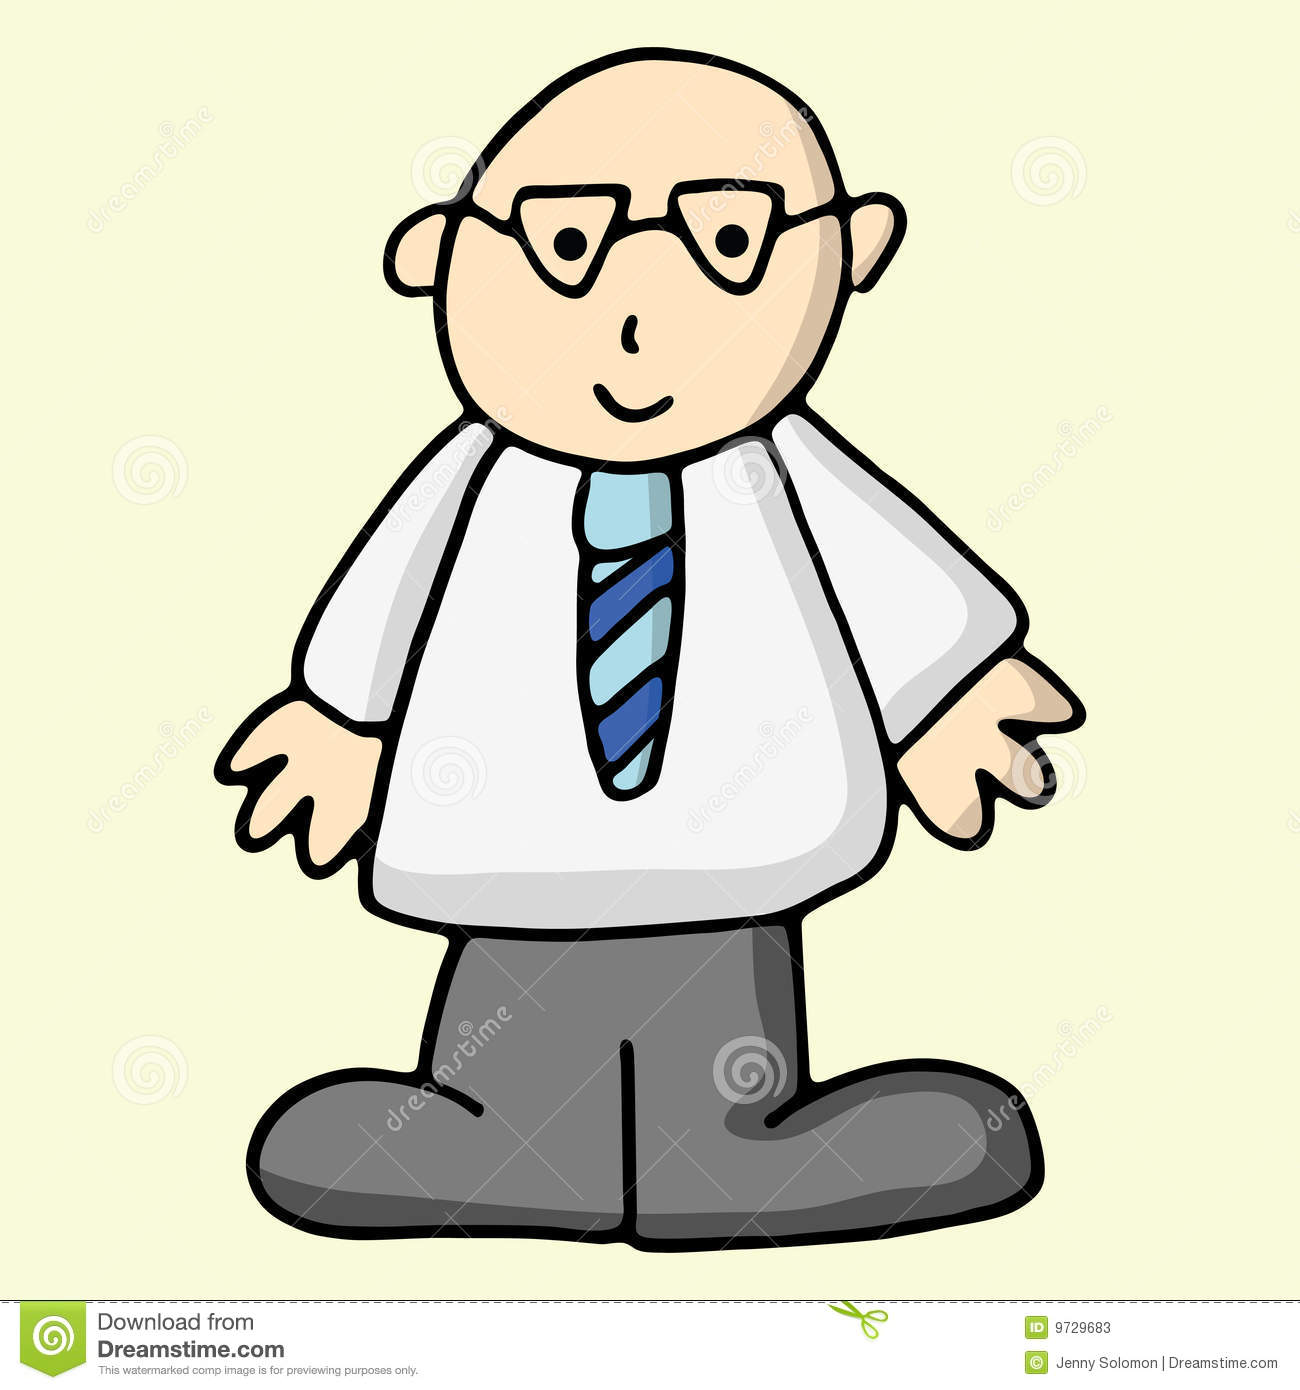 Cartoon Business Man Stock Photos - Image: 9729683